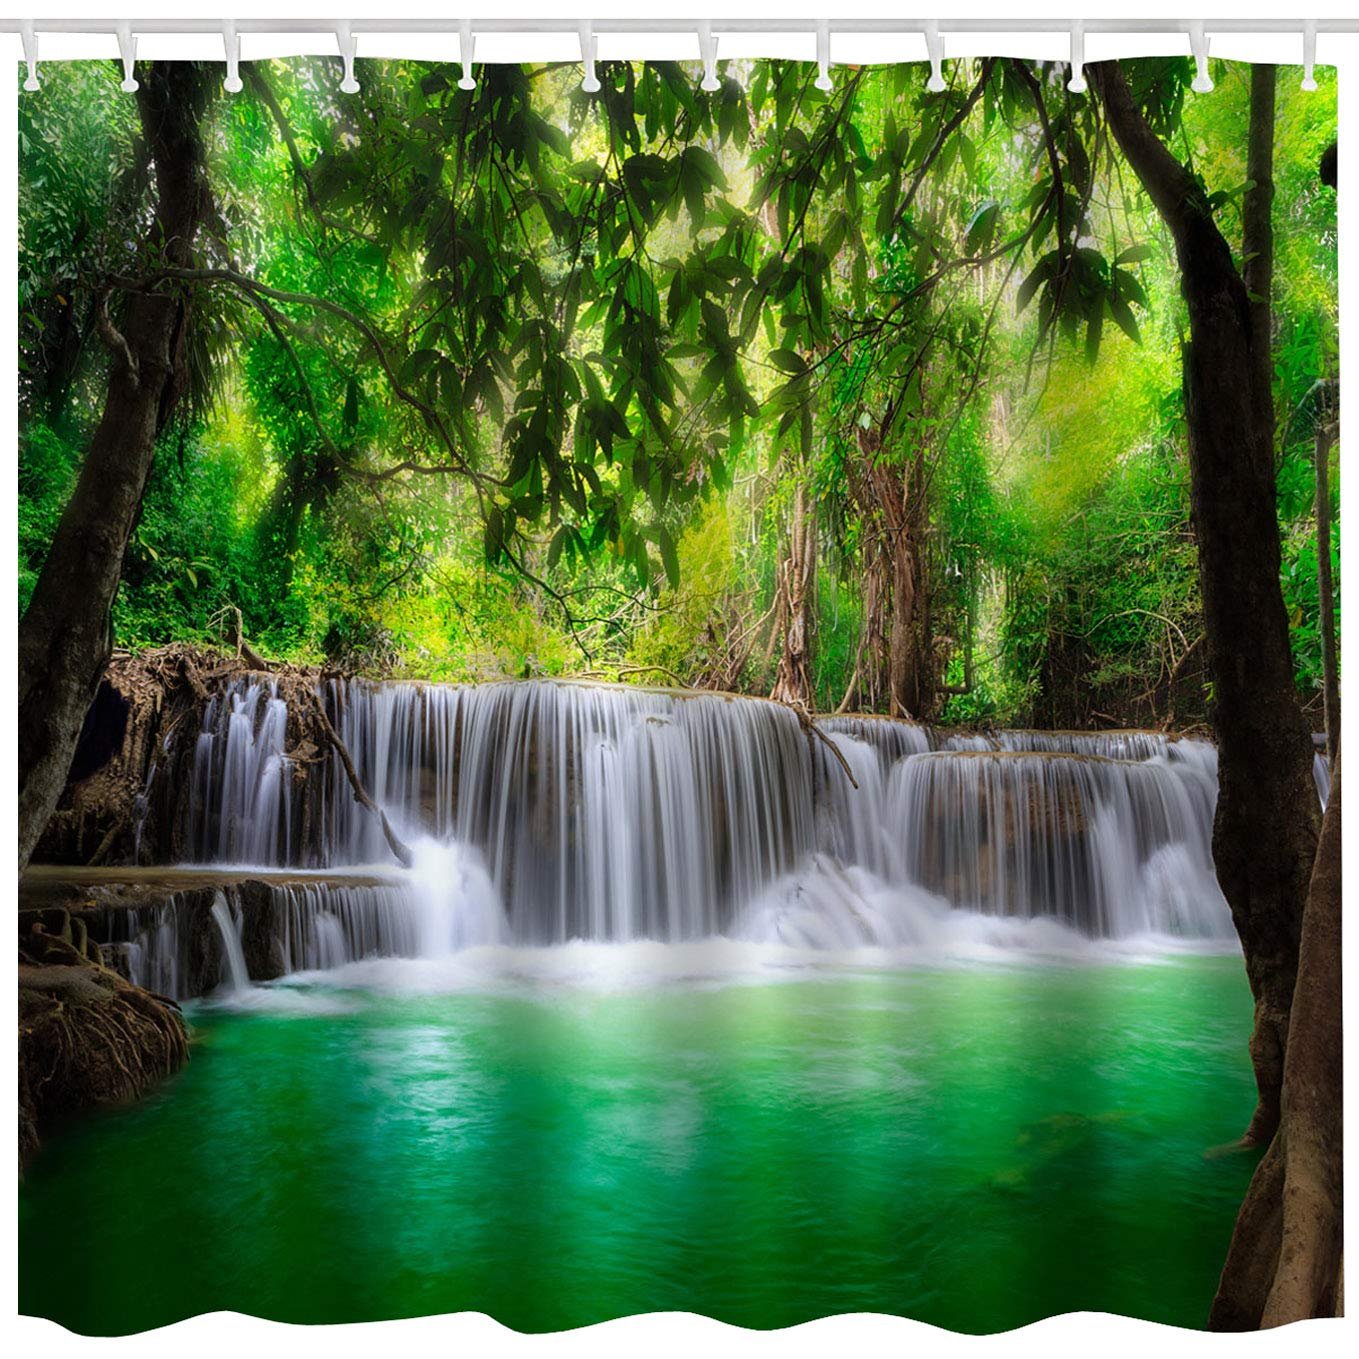 BROSHAN Green Lake Shower Curtain Set, Summer Waterfall in Forest Woodland Nature Jungle Scenery Art Printing,Waterproof Fabric Bathroom Decor Curtain with Hooks,Green Brown White, 72x 72 inch